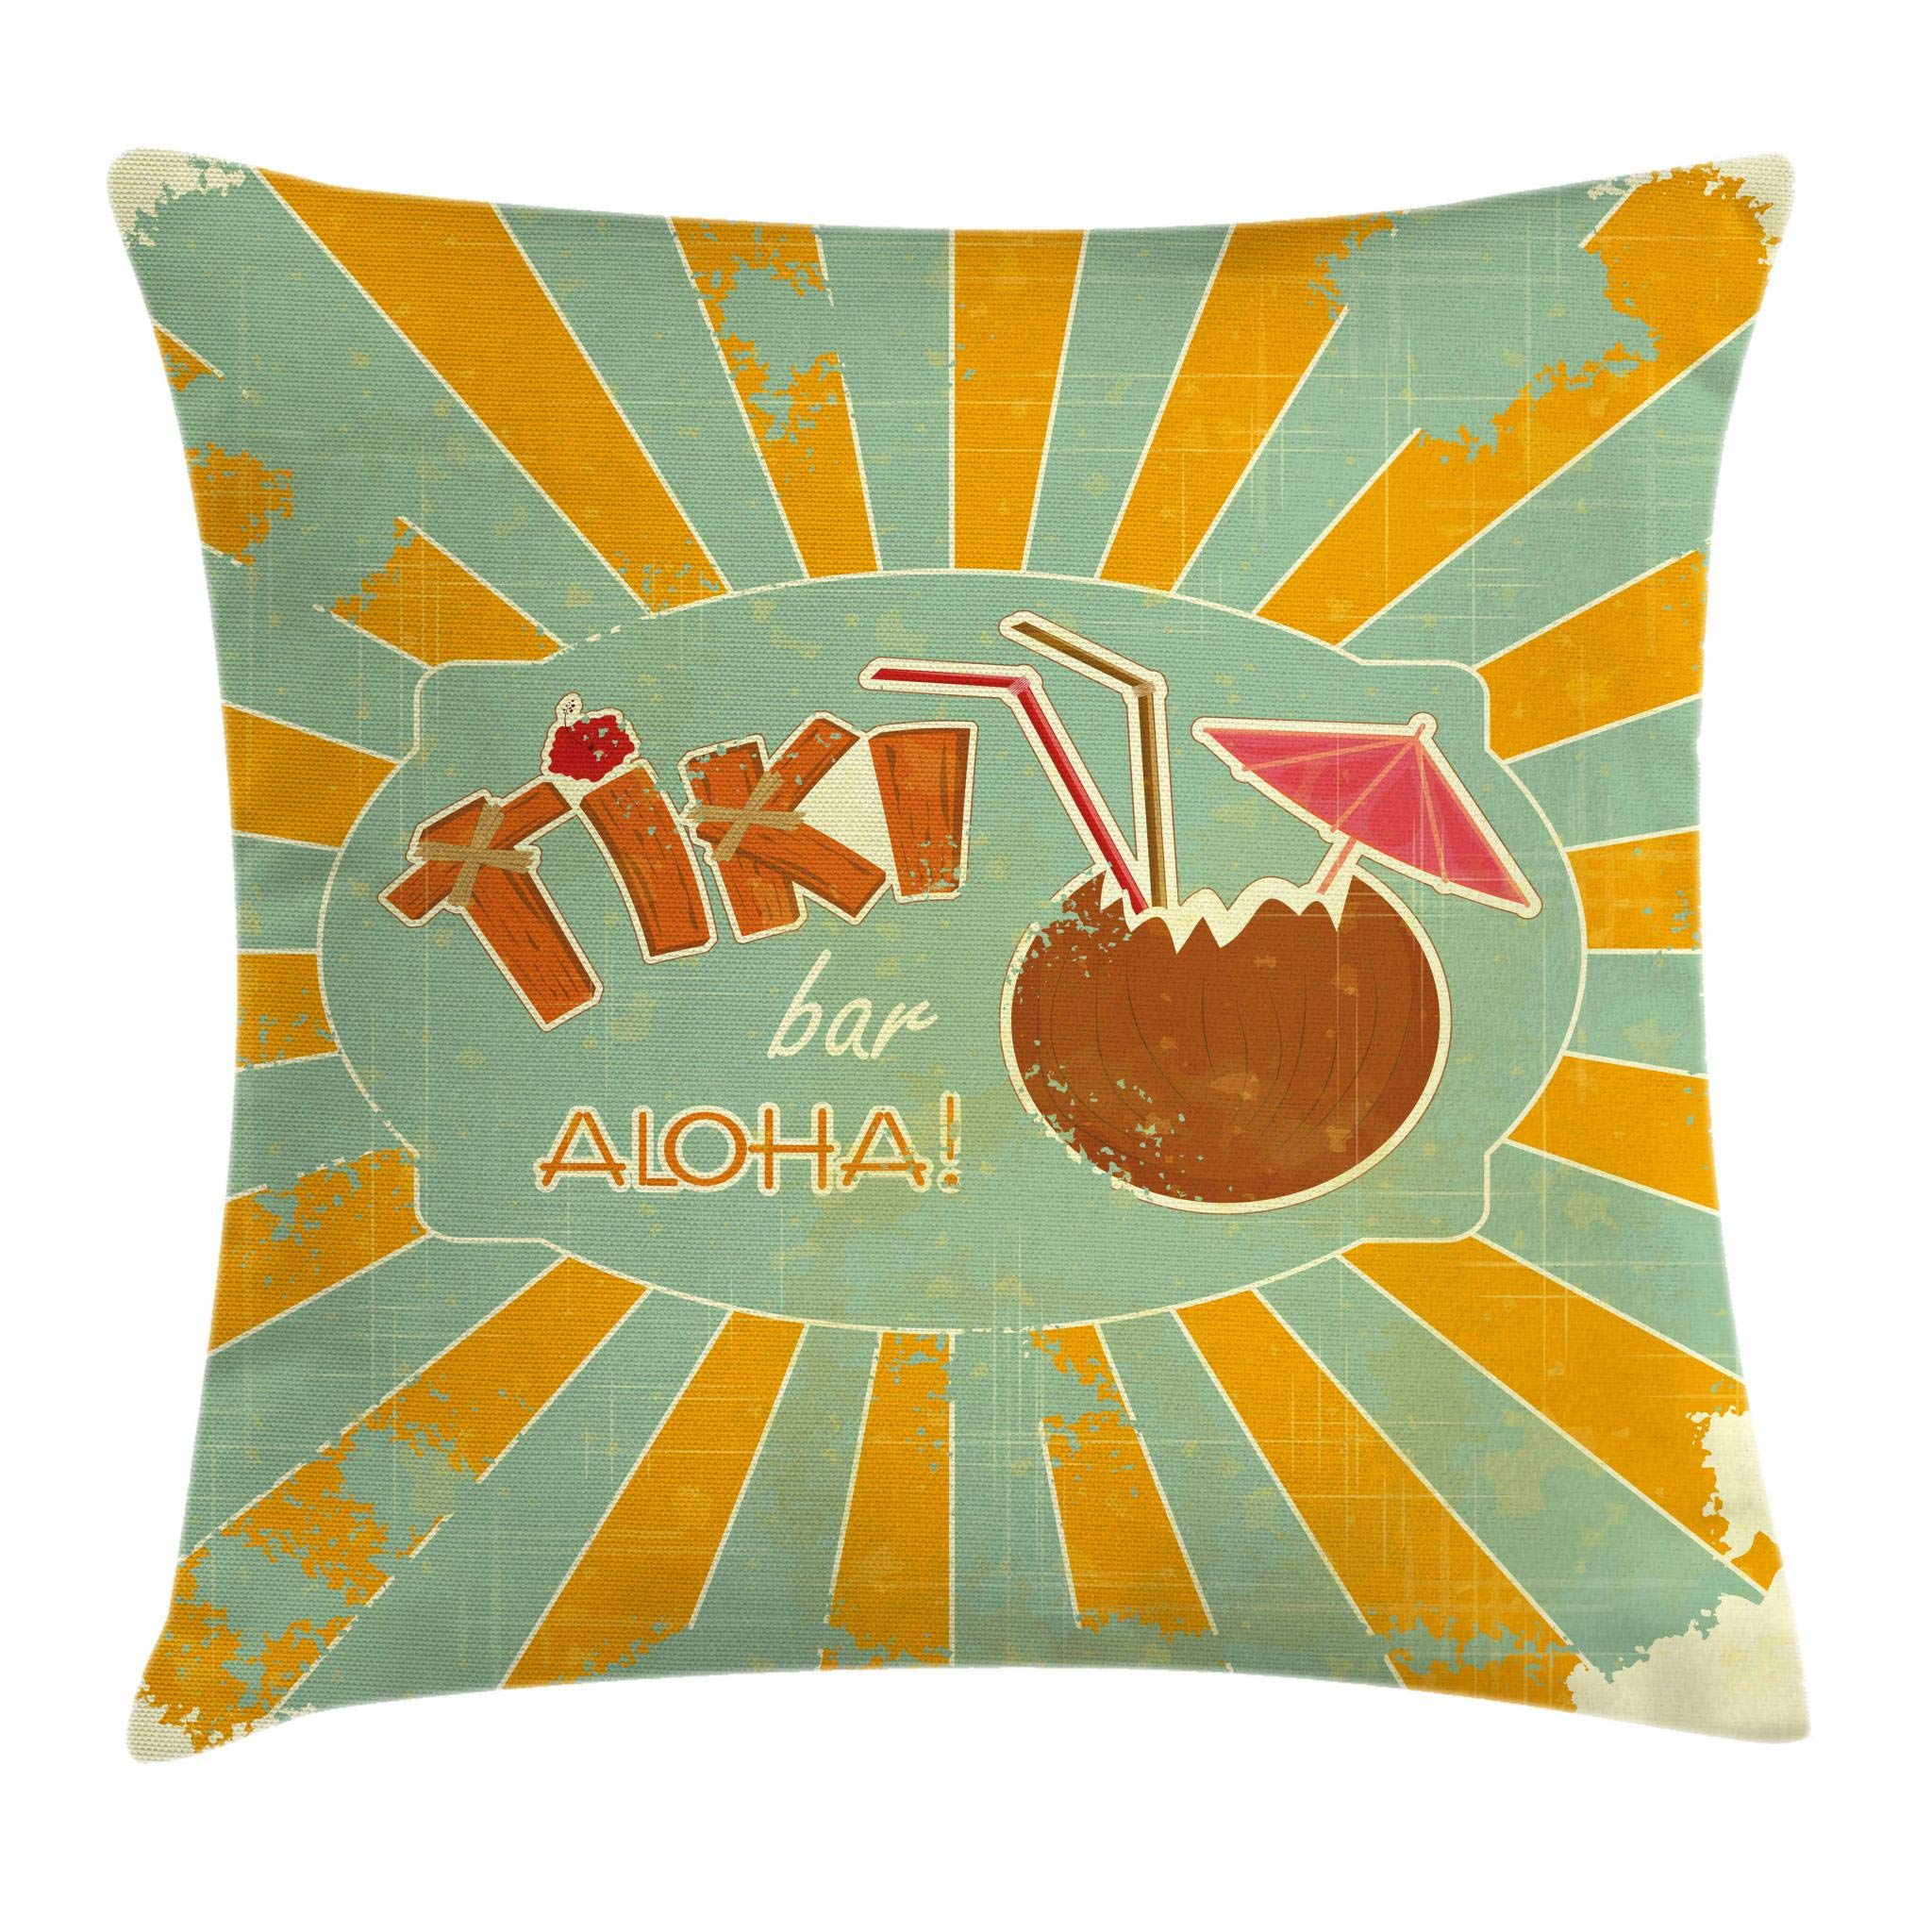 Ambesonne Tiki Bar Decor Throw Pillow Cushion Cover, Vintage Design Exotic Cocktail Aged Look Aloha Fun Party, Decorative Square Accent Pillow Case, 18 X 18 Inches, Orange Almond Green Brown